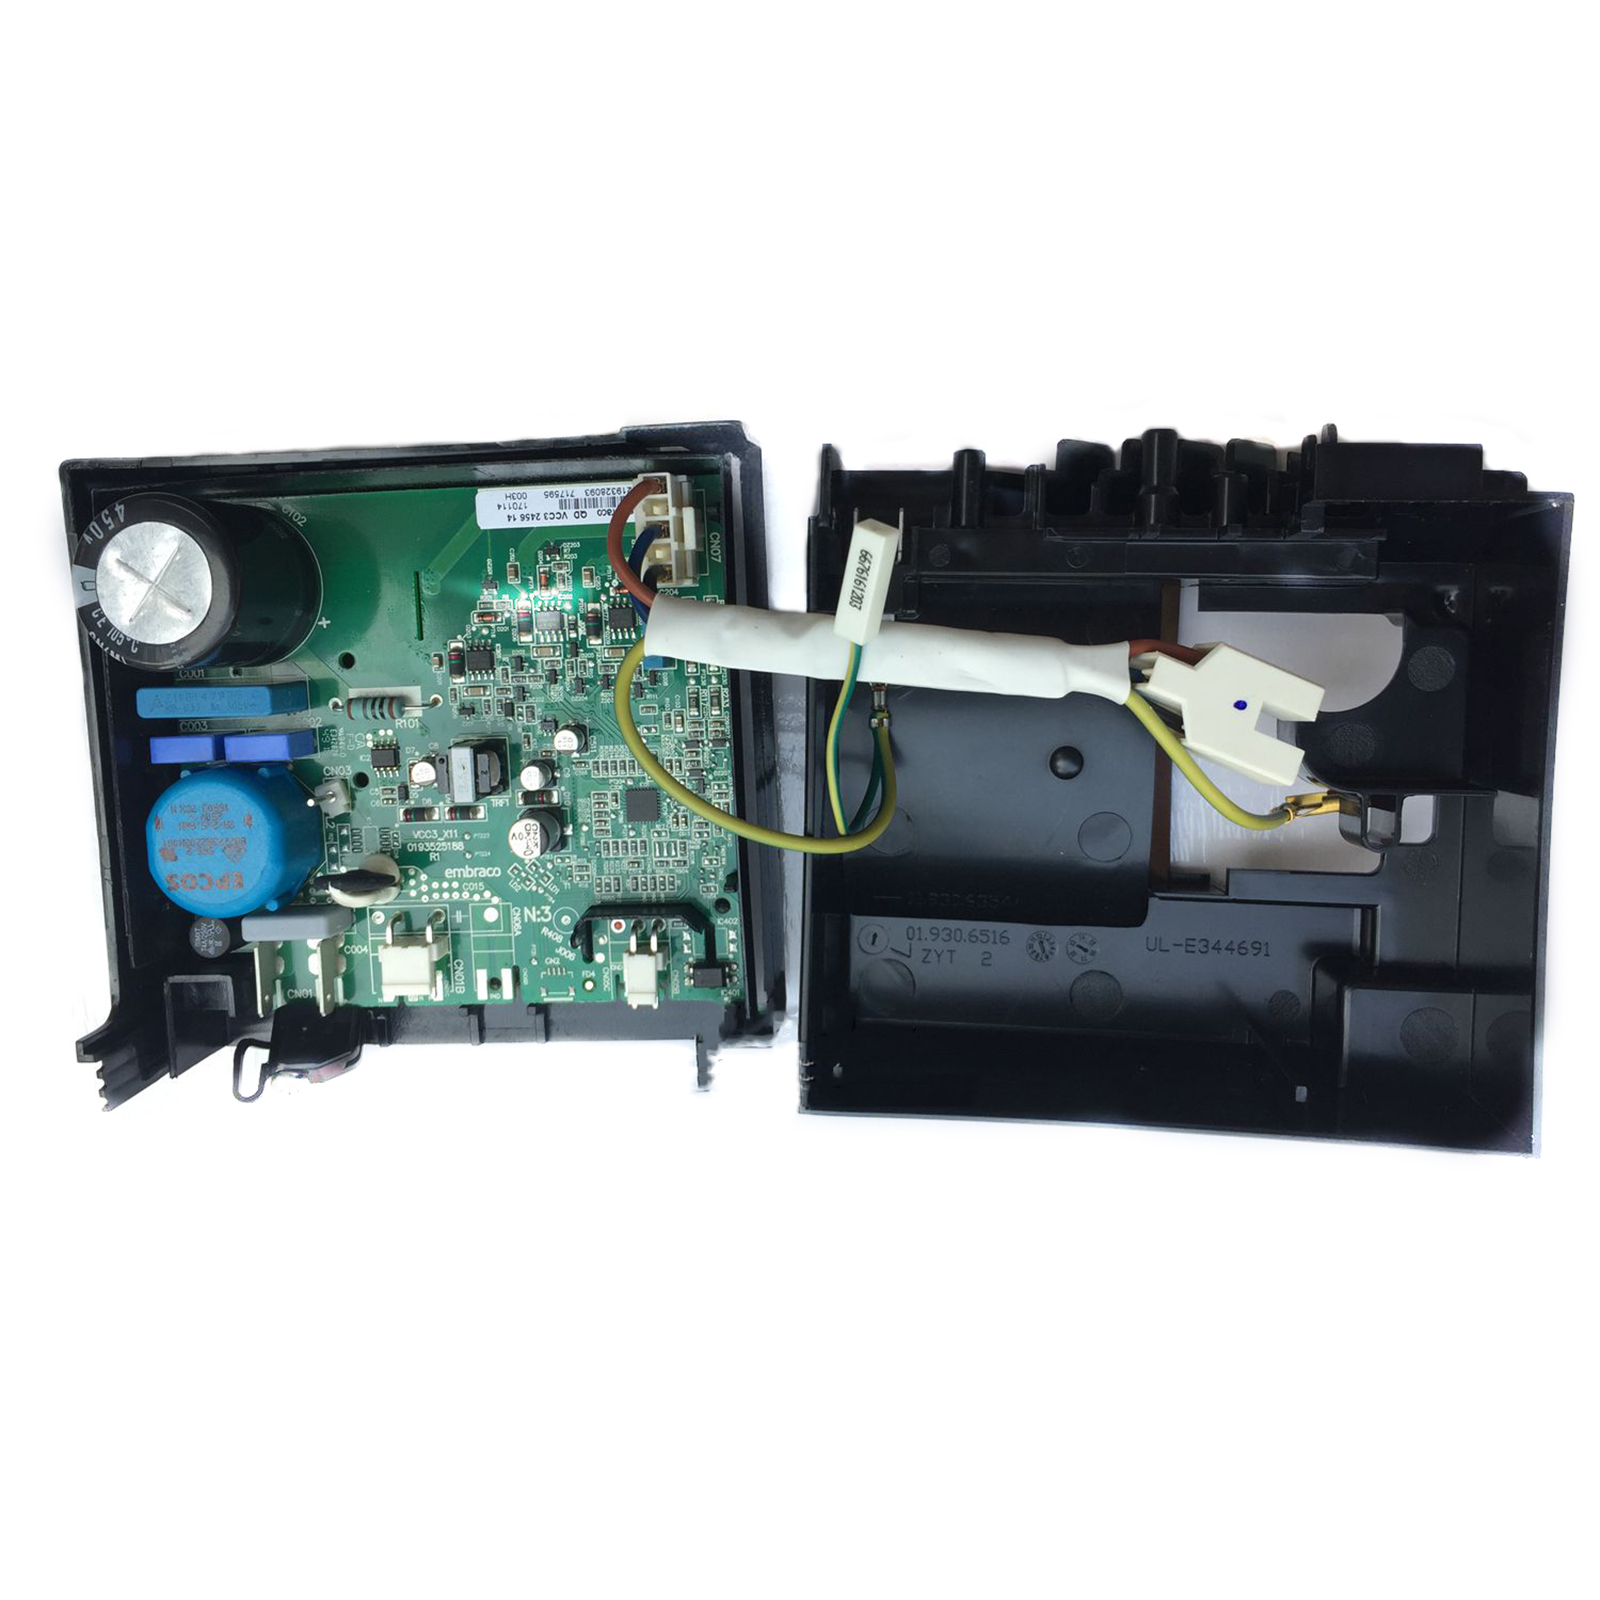 New Inverter Board Driver Board 0193525188 Embraco QD VCC3 2456 14 F 02 For Hair Meiling Refrigerator Parts